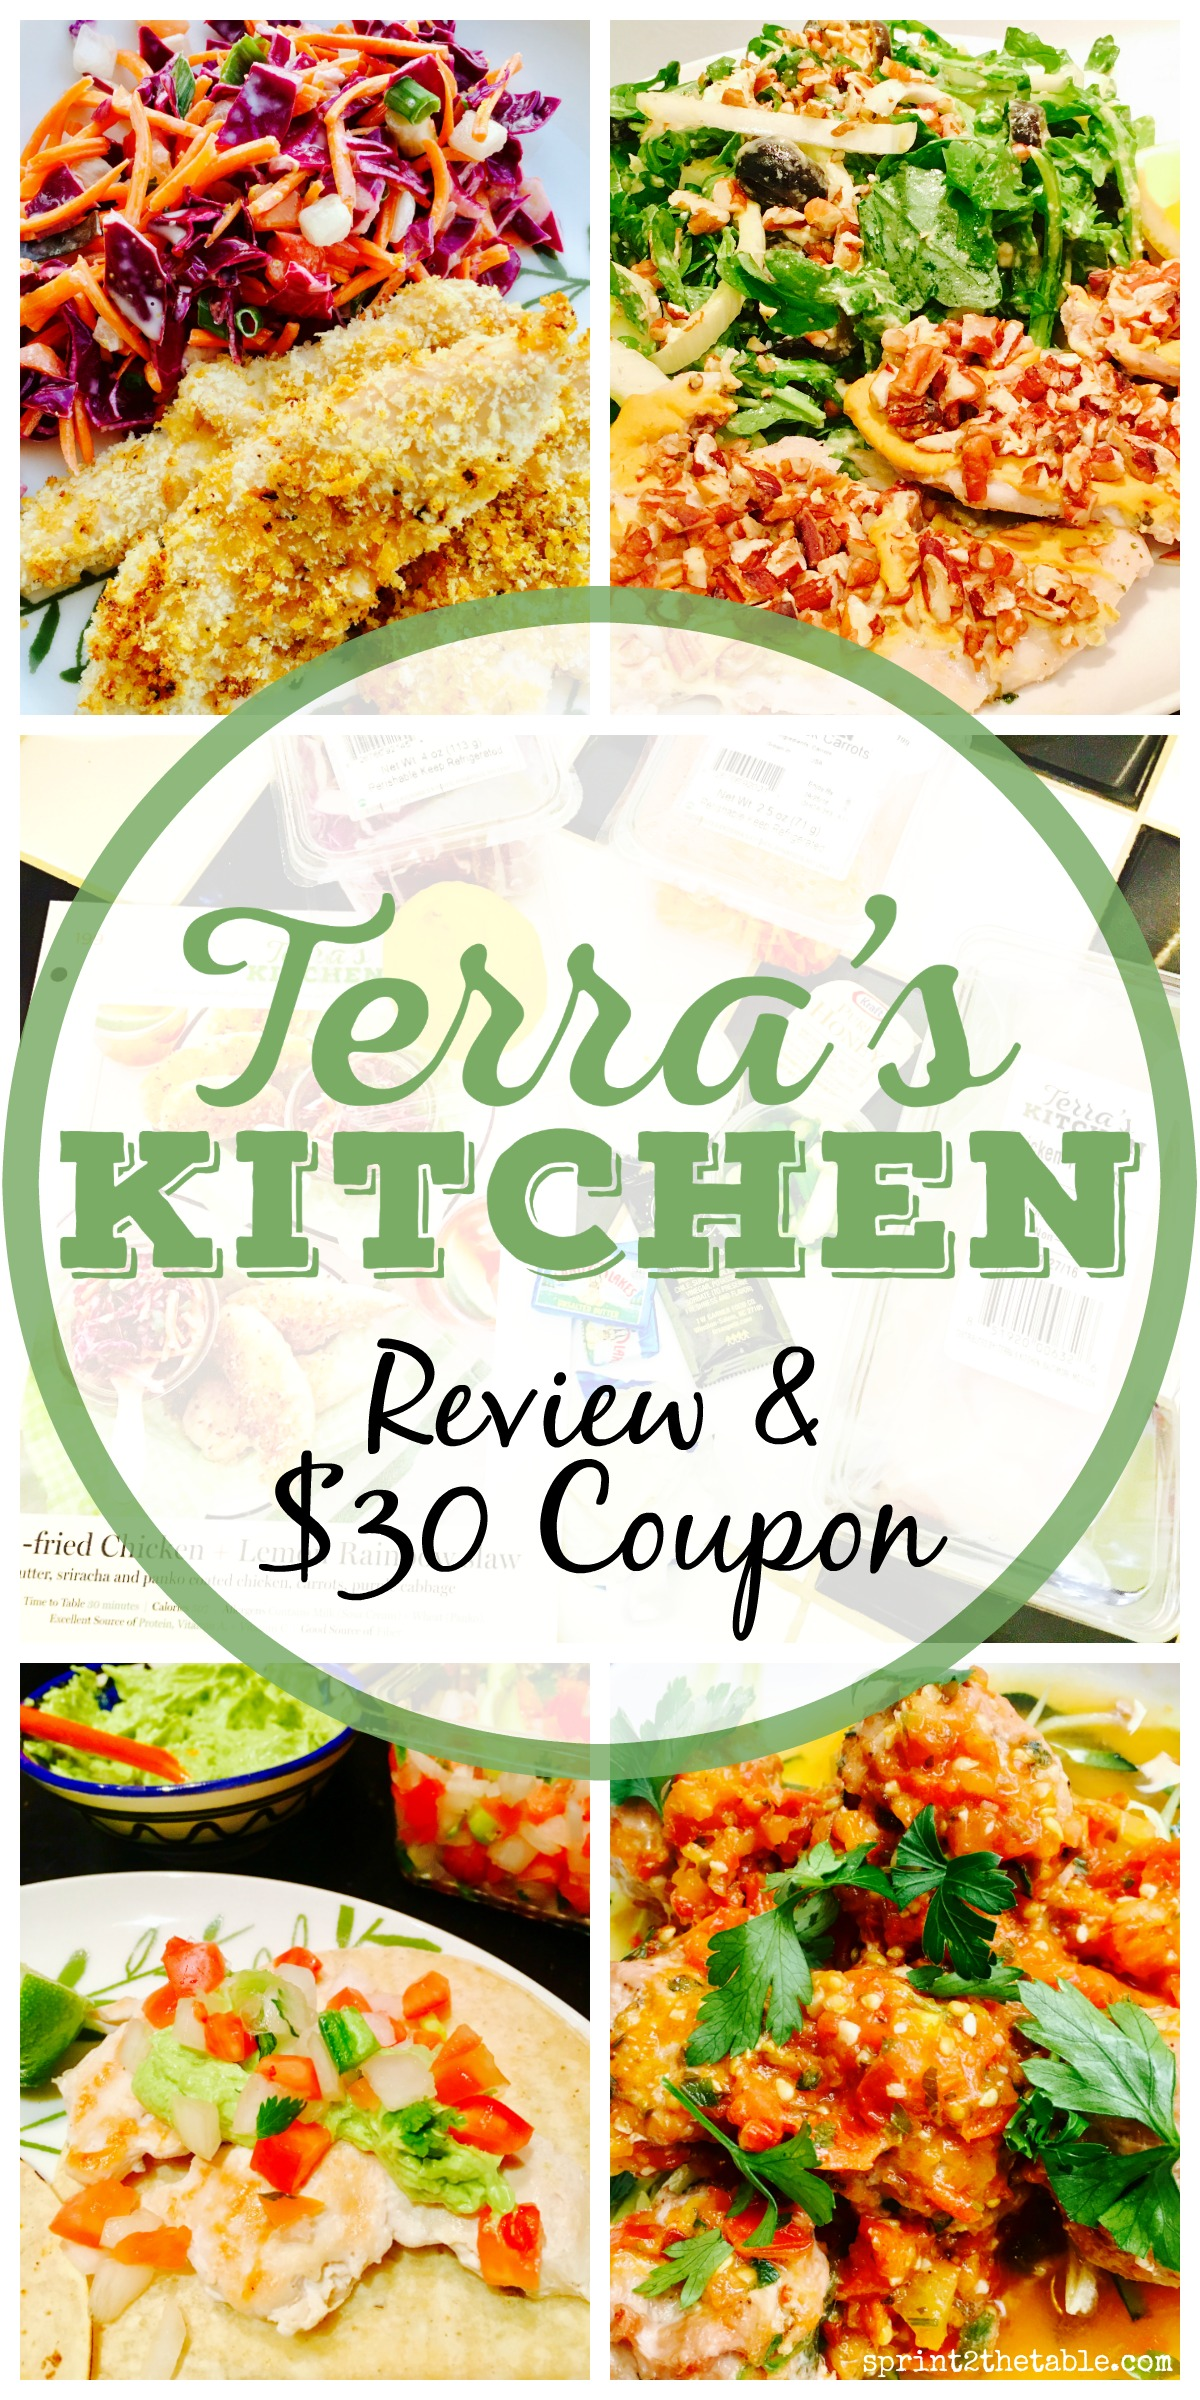 Image Result For Terras Kitchen Coupon